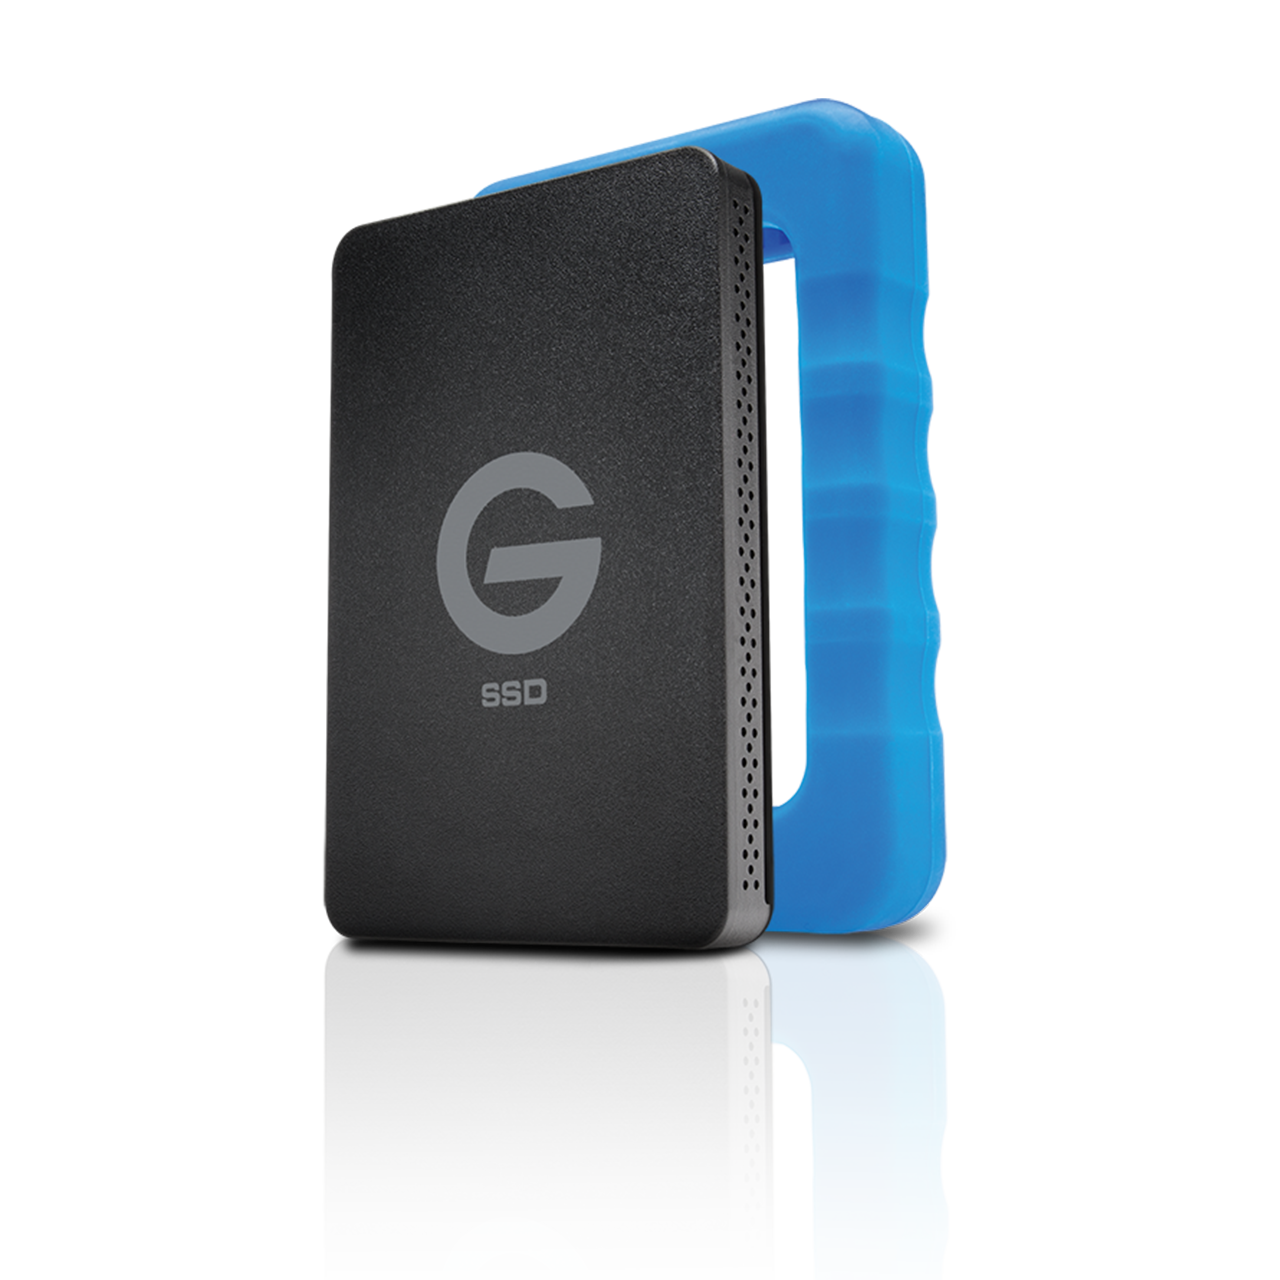 G-Technology G-DRIVE ev RaW 1TB 7200RPM, USB 3.0, Lightweight and Rugged, evolution series compatible, includes U